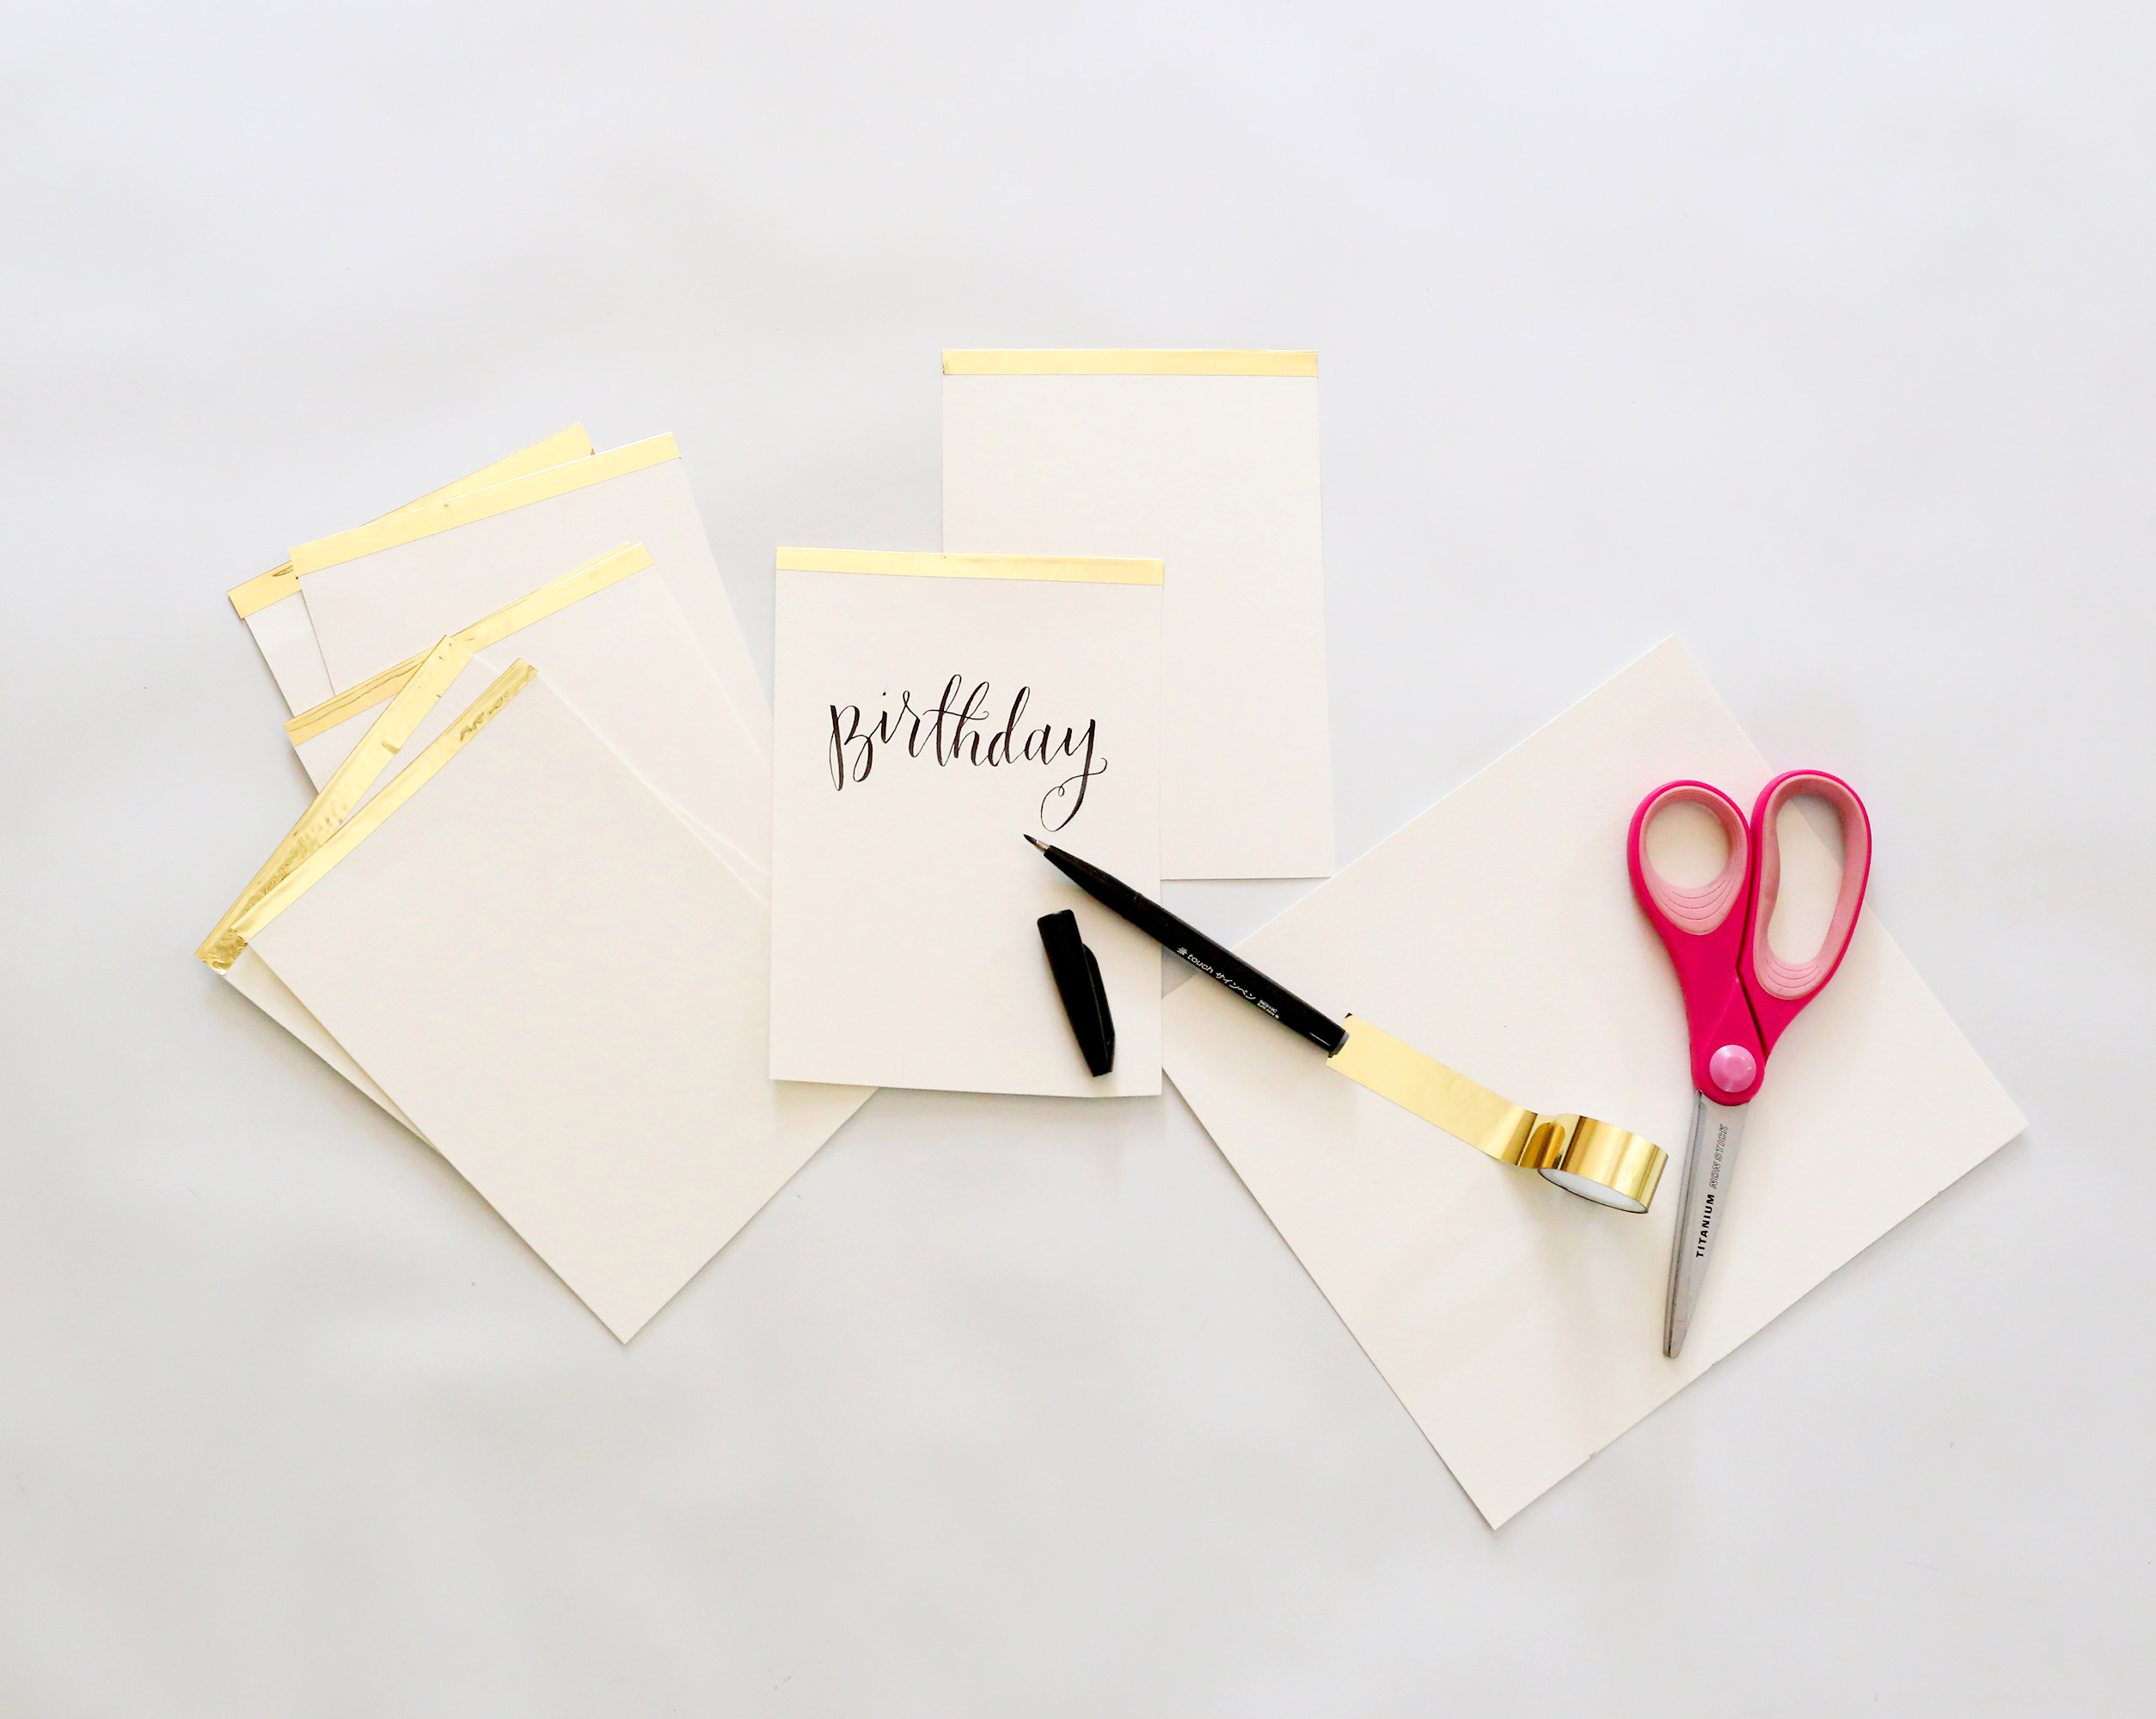 Card dividers for your note card organizer via Lily & Val Living